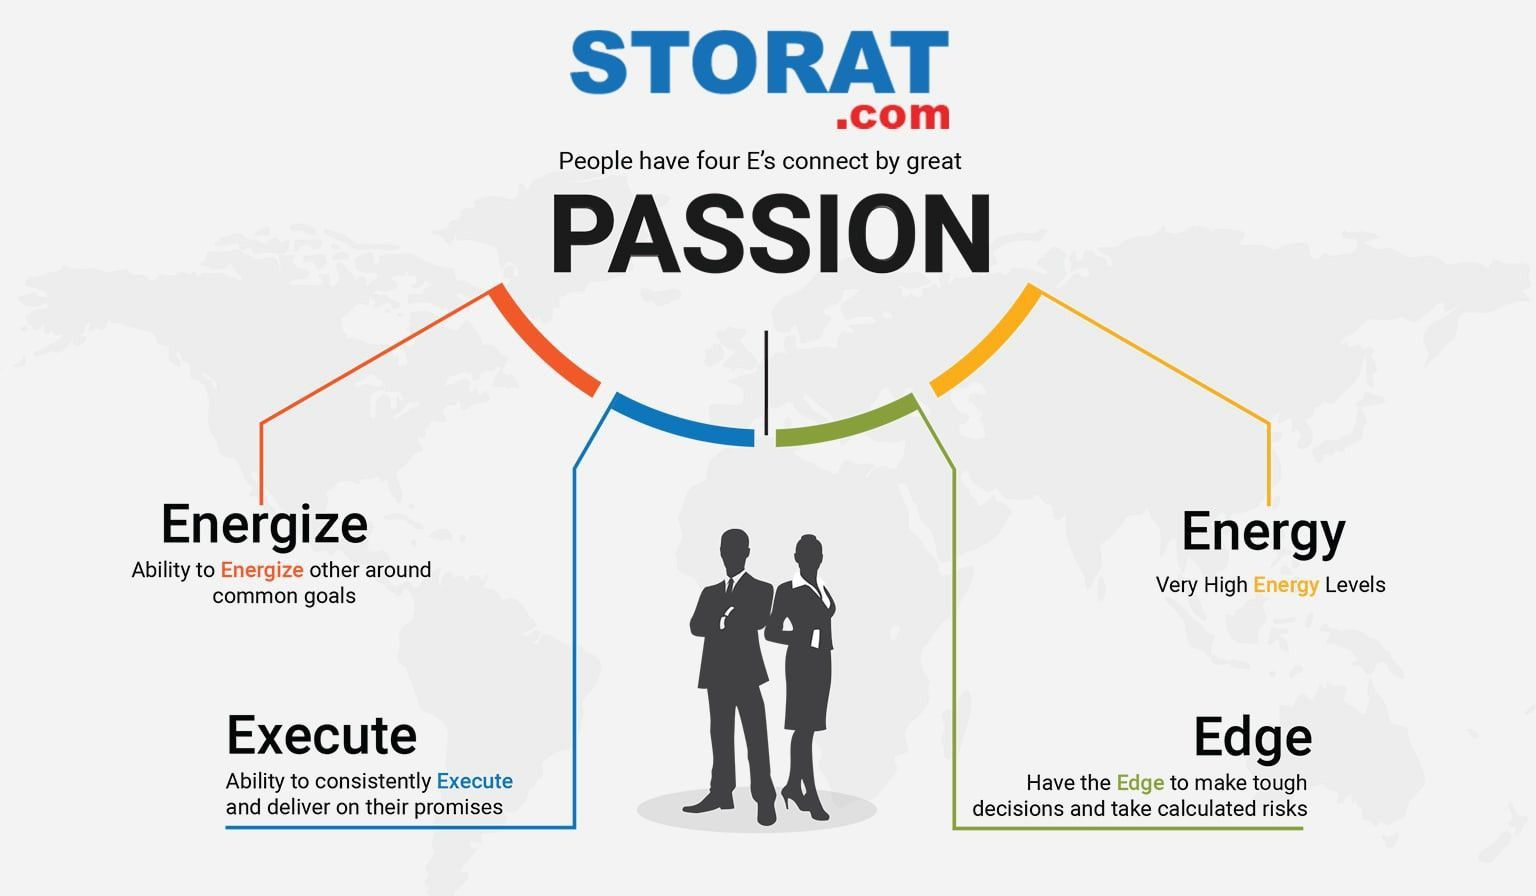 Storat.com is hiring open position in egypt and india